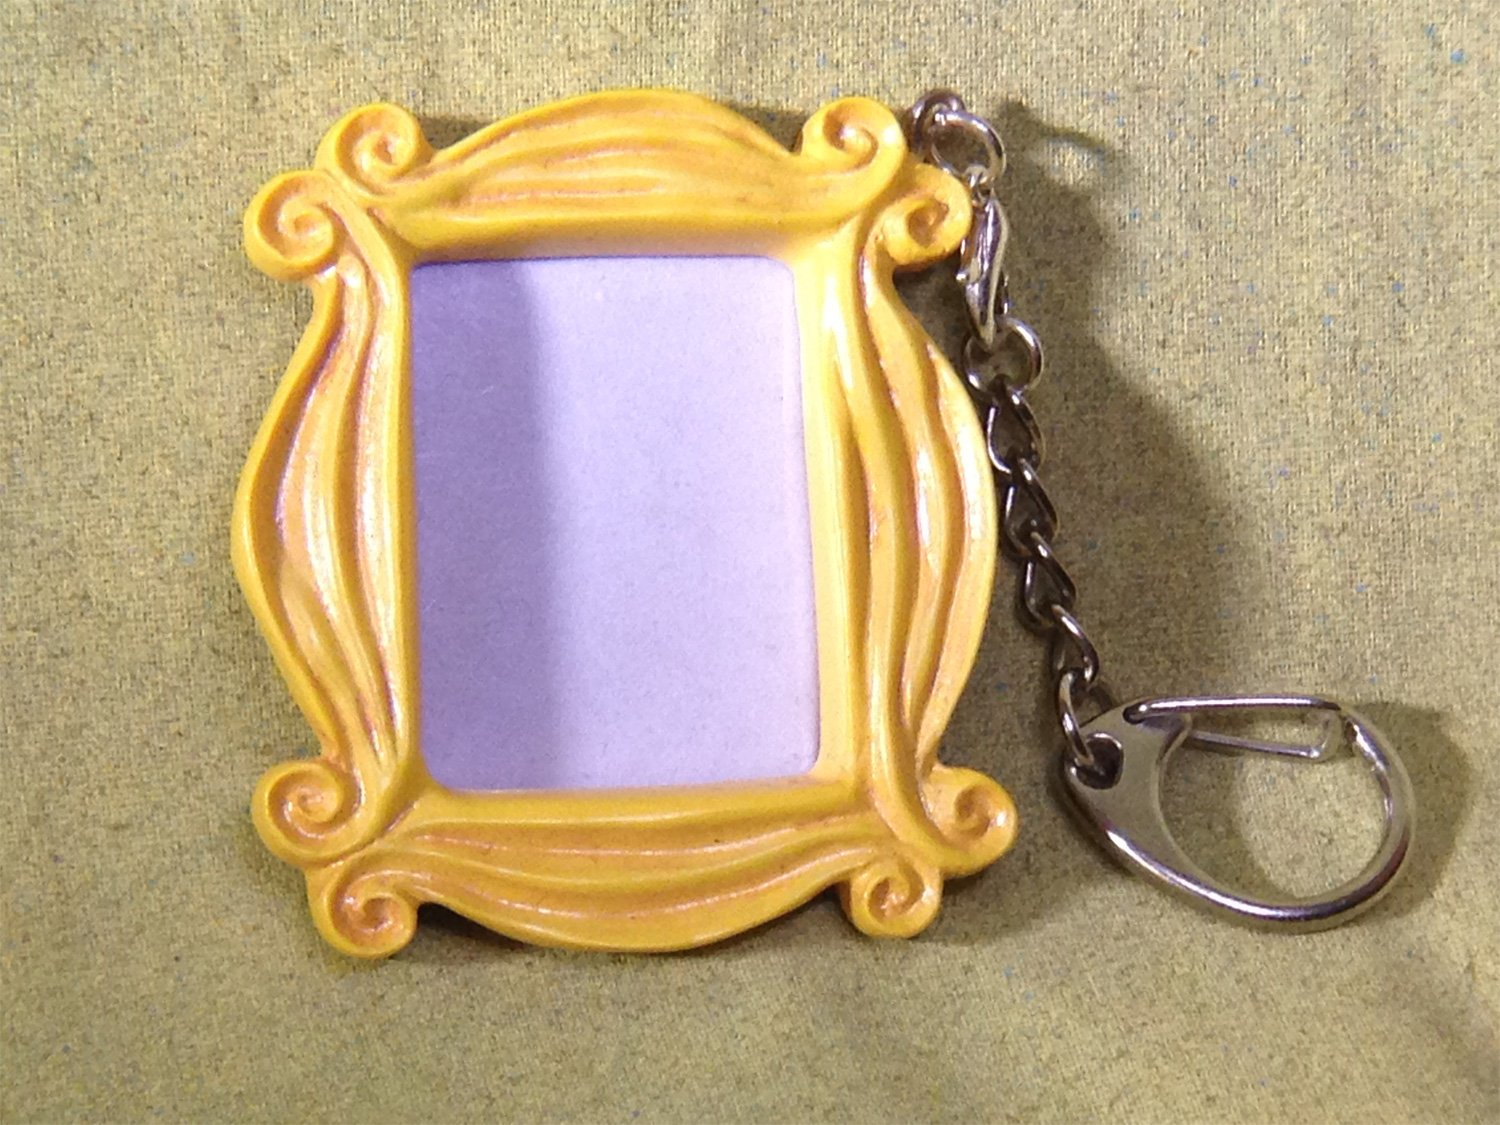 Friends Peephole Frame Necklace, Keychain